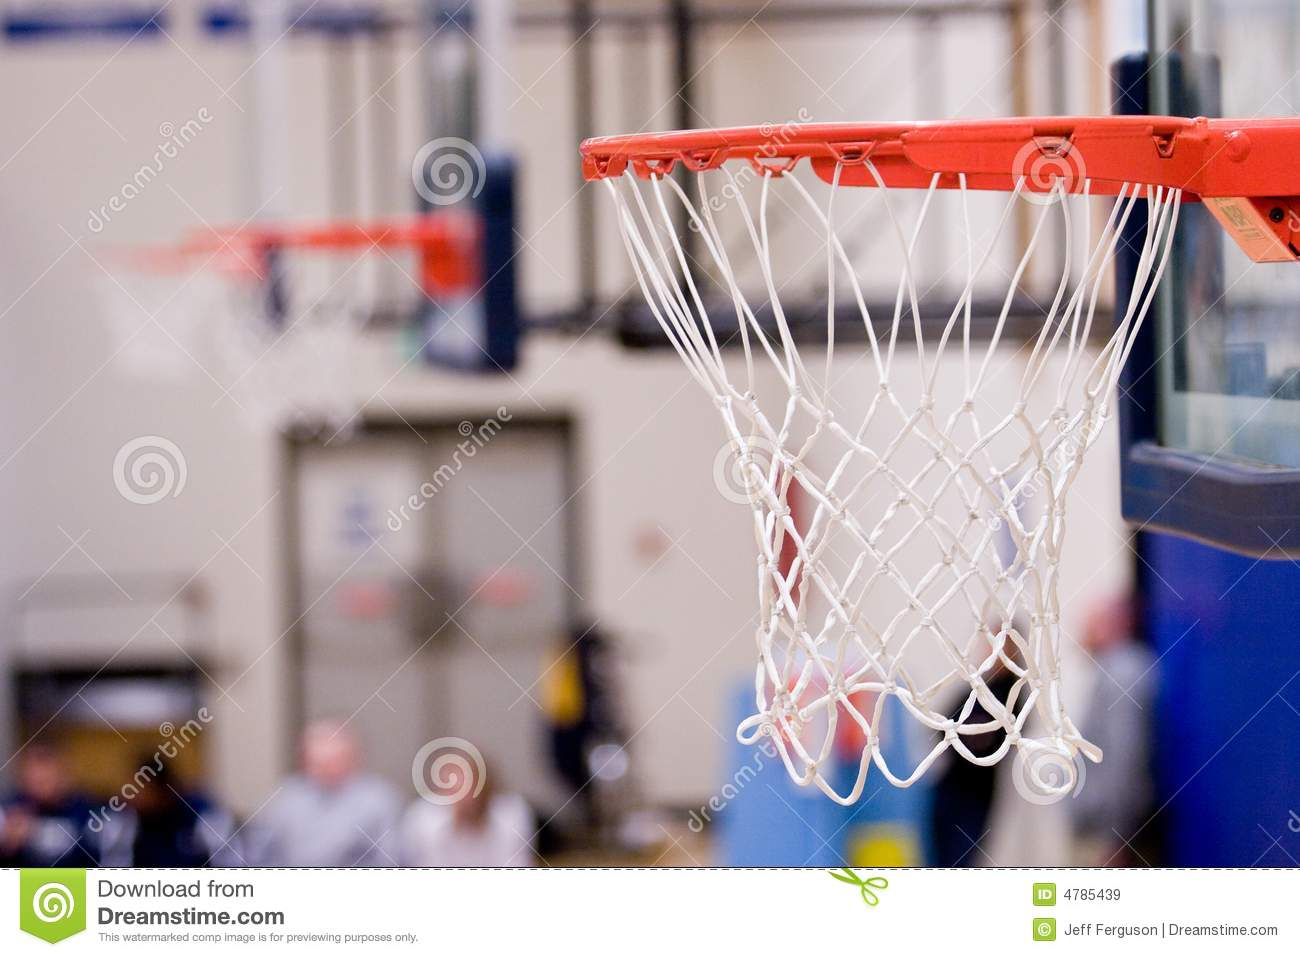 3 Basketball Hoops with nets hanging inside a gym